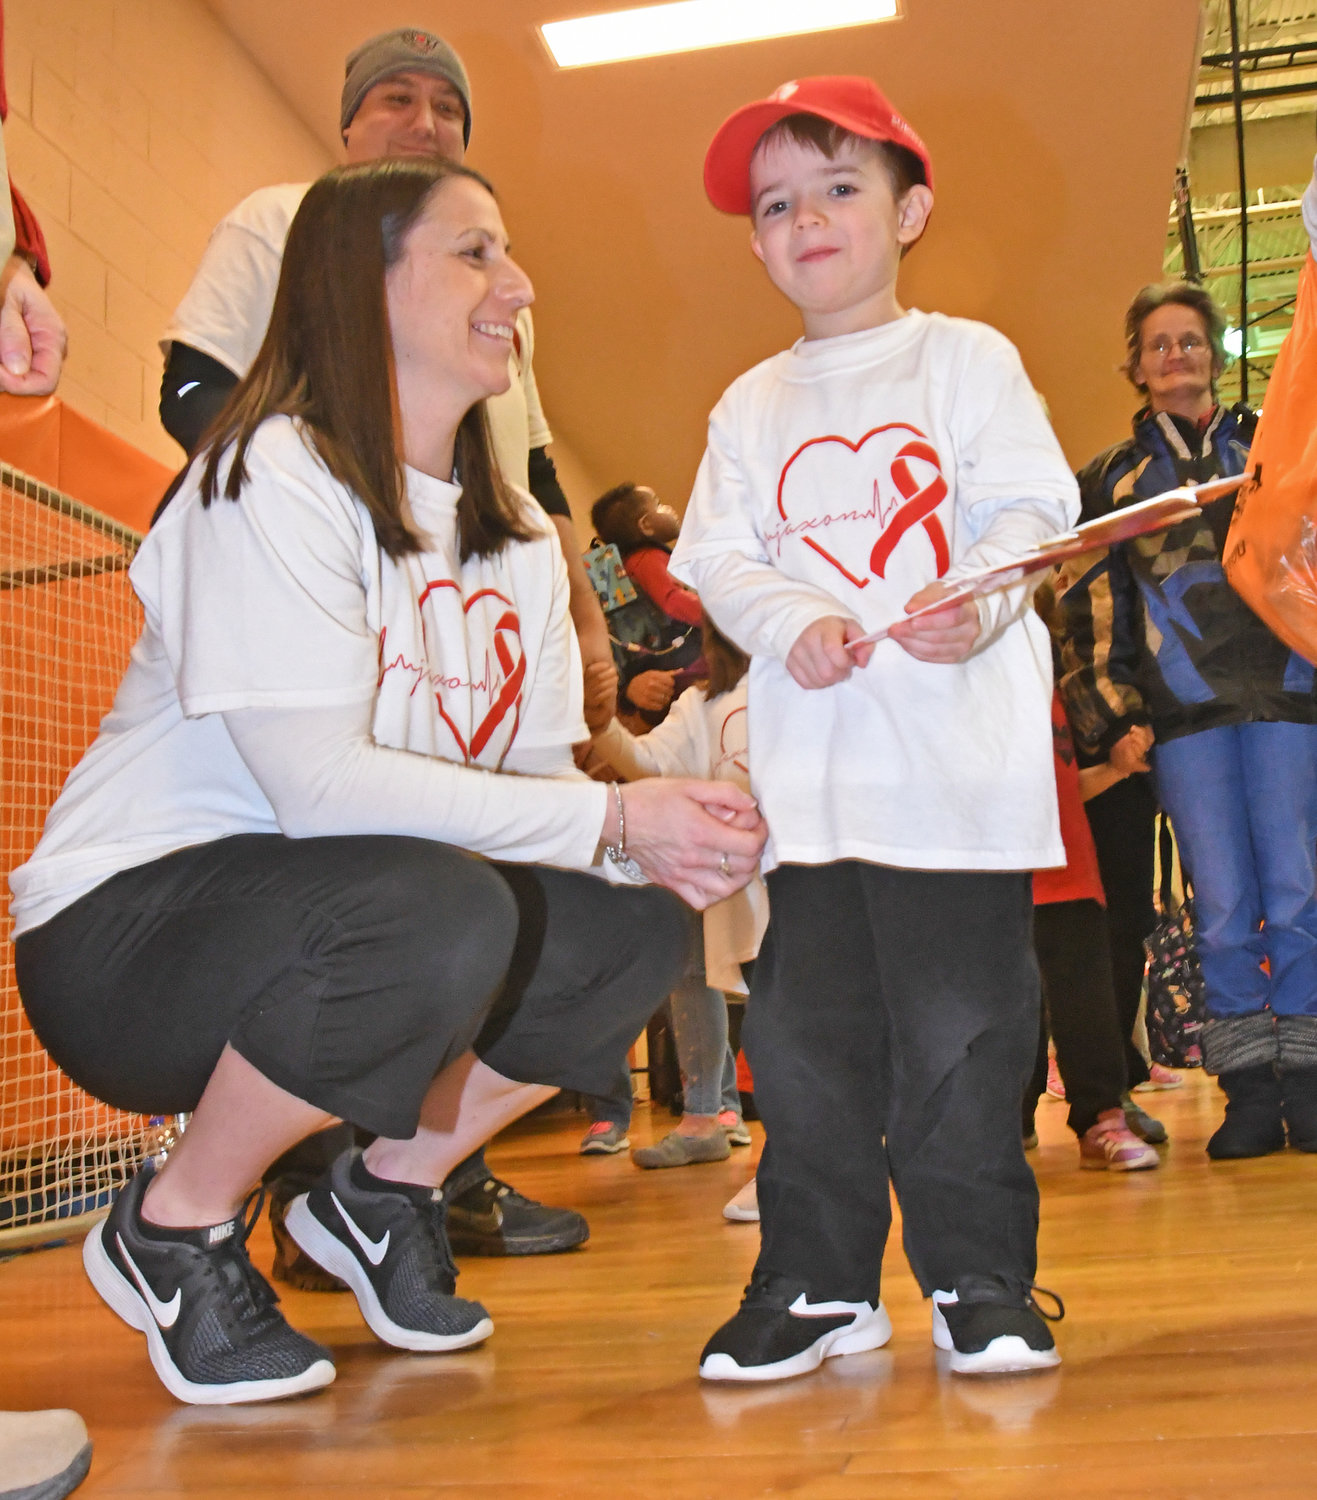 RED CAP AMBASSADOR — Jaxon Hayes, 5, of Rome, with his mom Cindy Hayes and his dad, Patrick, get ready for the start of Saturday's Indoor Heart Run & Walk at Rome Free Academy.